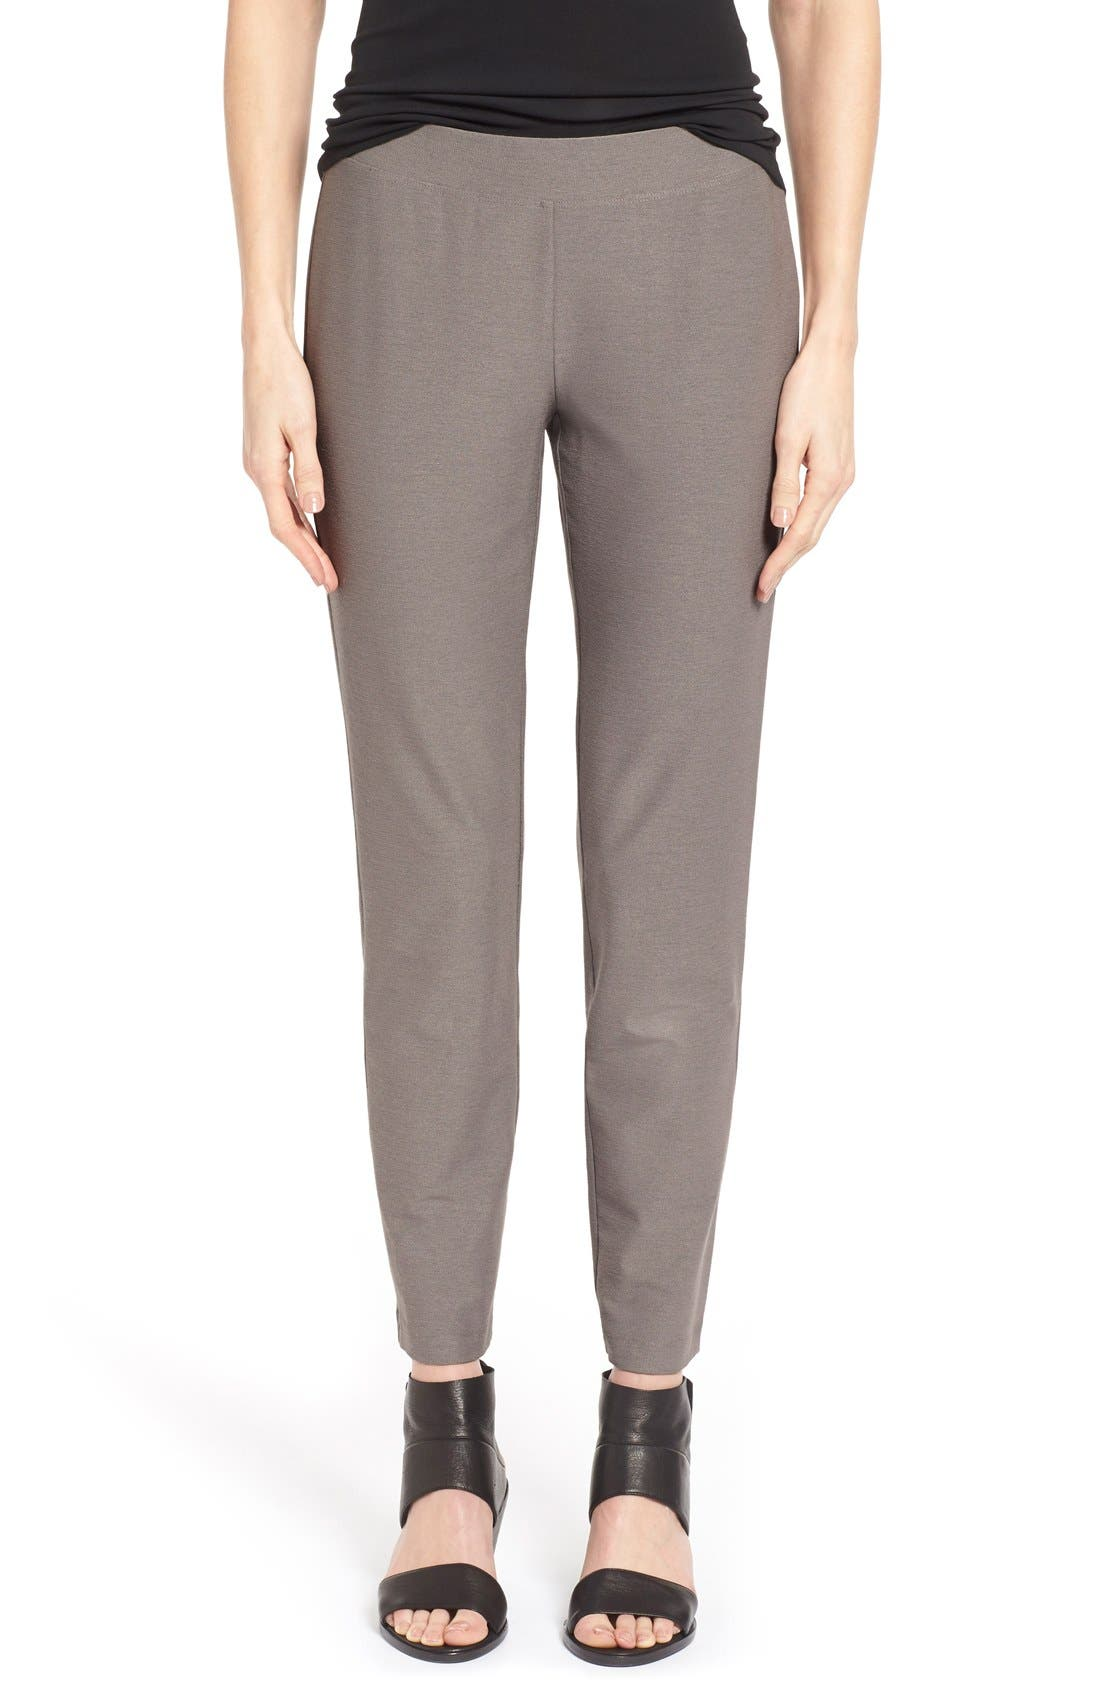 Alternate Image 1 Selected - Eileen Fisher Stretch Crepe Ankle Pants (Regular & Petite) (Online Only)